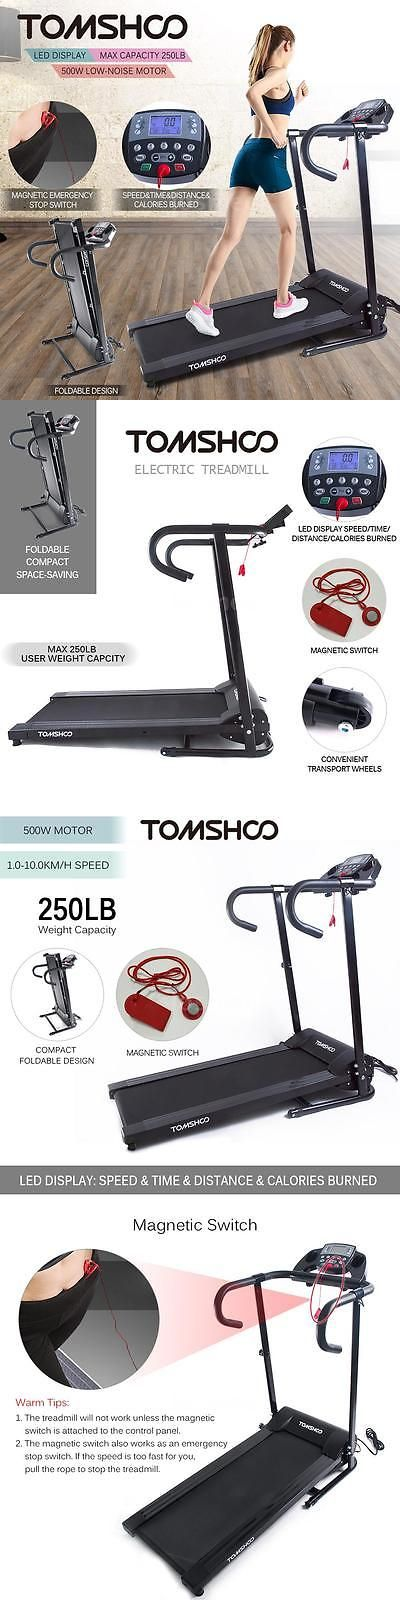 Treadmills 15280: Tomshoo 800W Motorized Folding Electric Treadmill Jogging Machine Home Gym New -> BUY IT NOW ONLY: $178.85 on eBay!